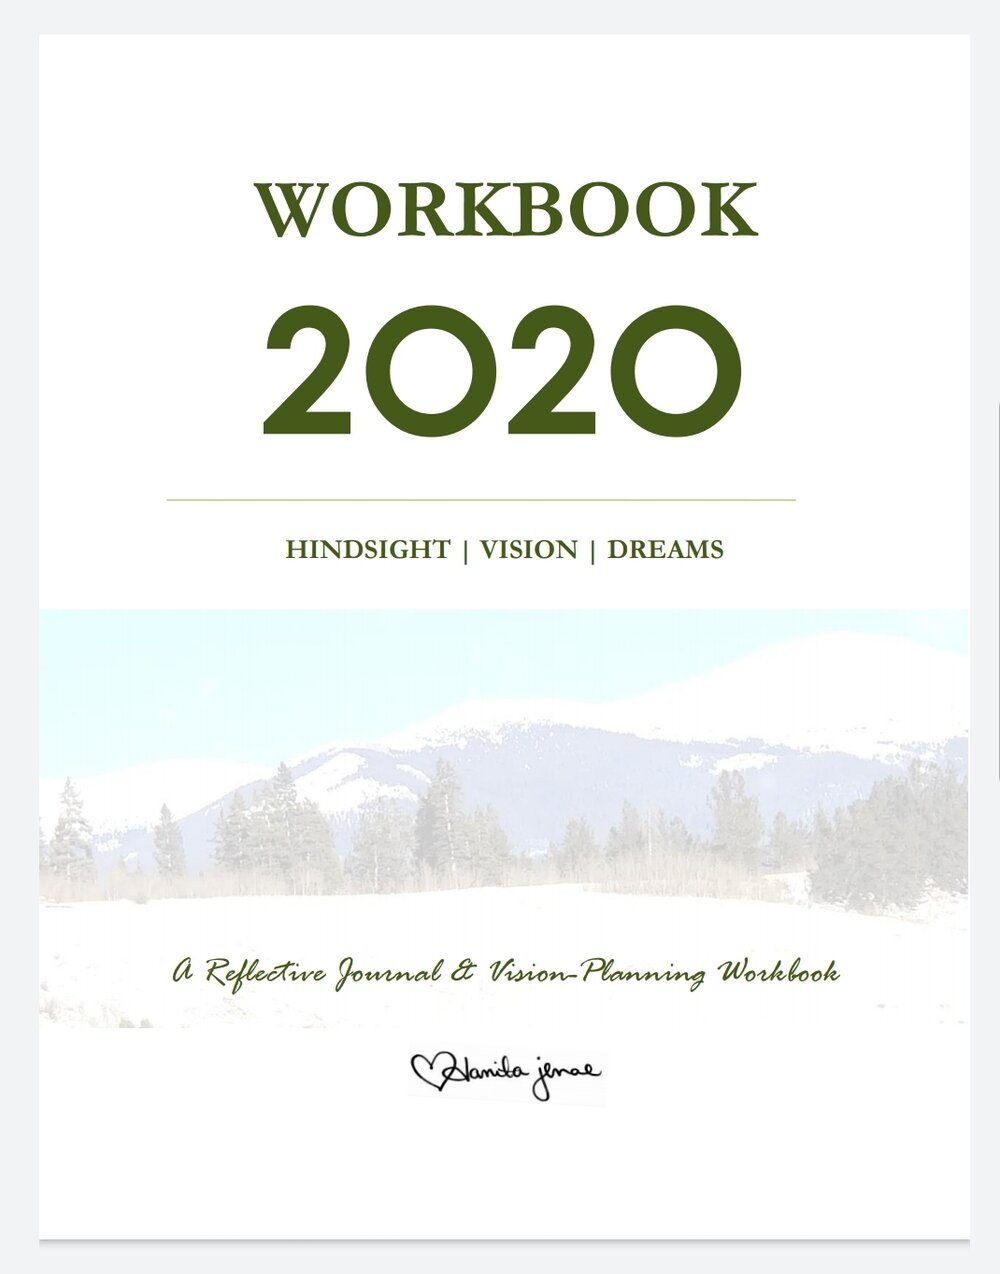 Workbook 2020 Cover 2.jpg